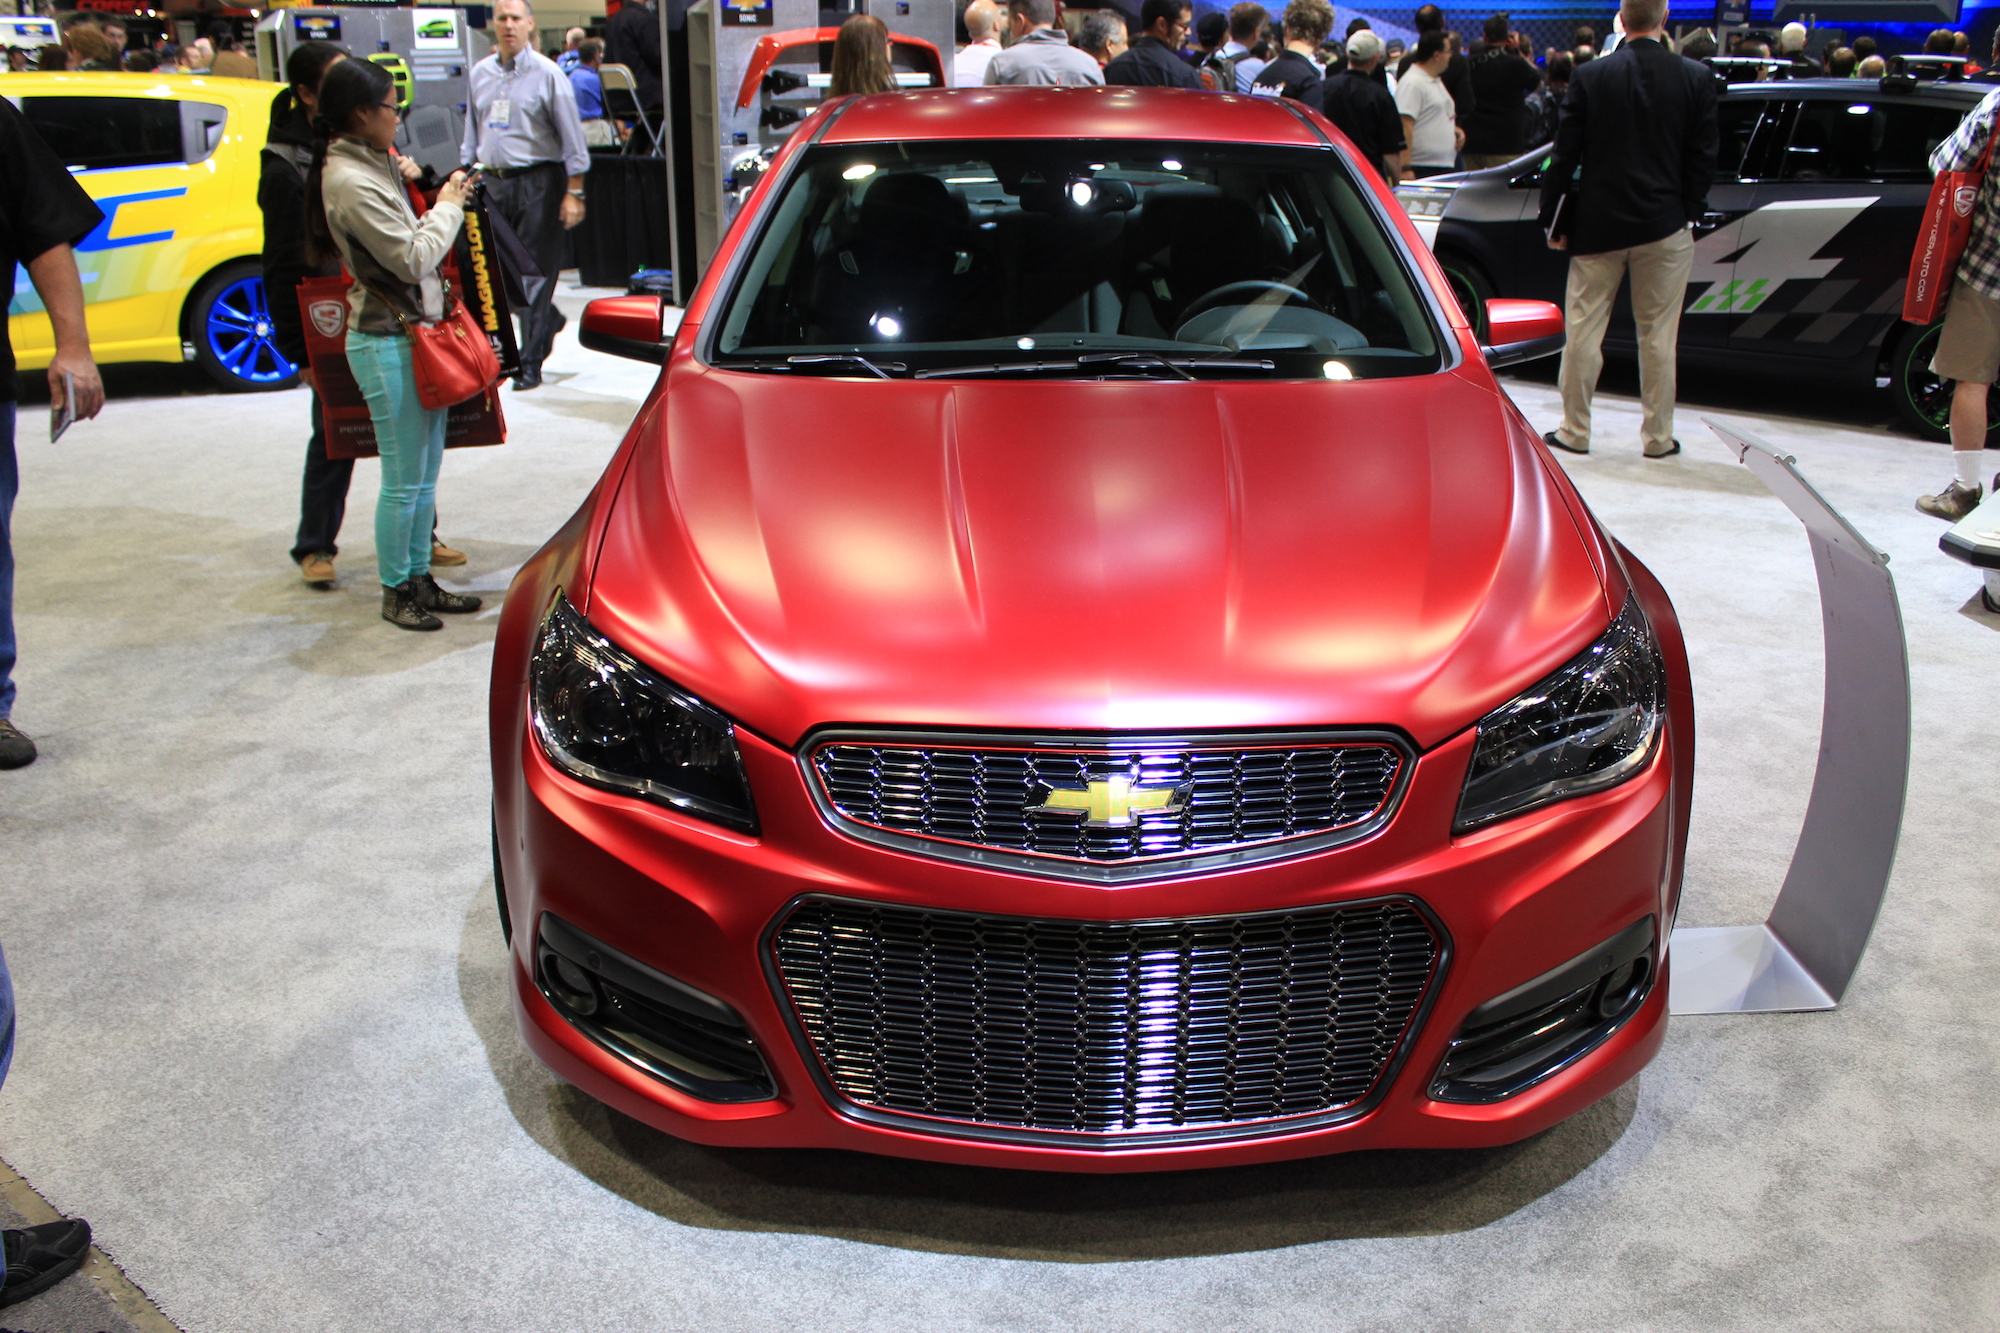 2014 Chevrolet Ss Prepped By Jeff Gordon Live From Sema